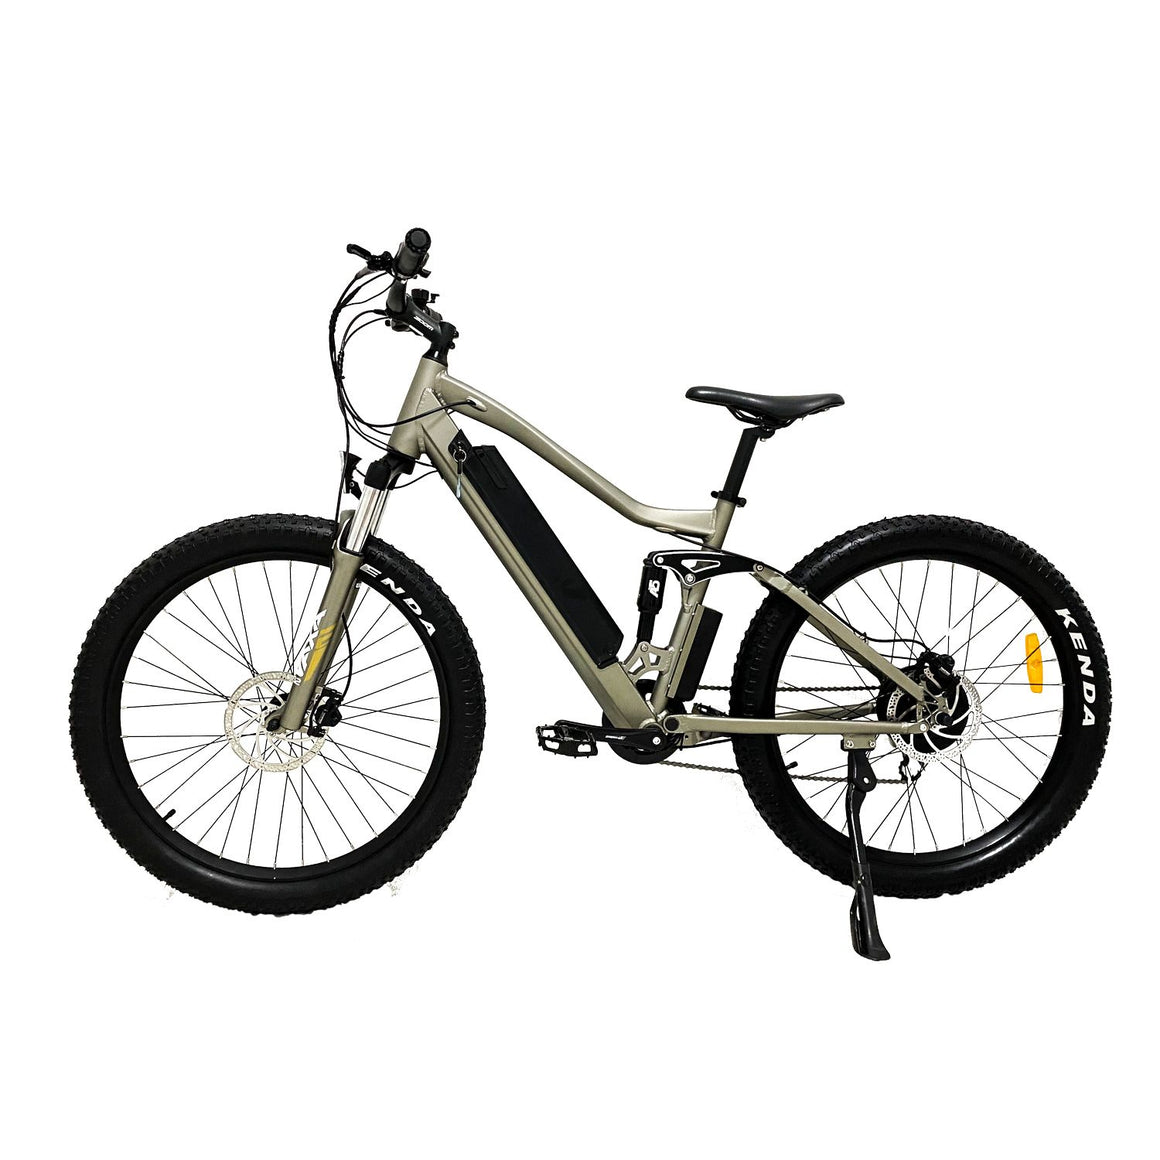 The Rhino - Full Suspension EBike - IN STOCK